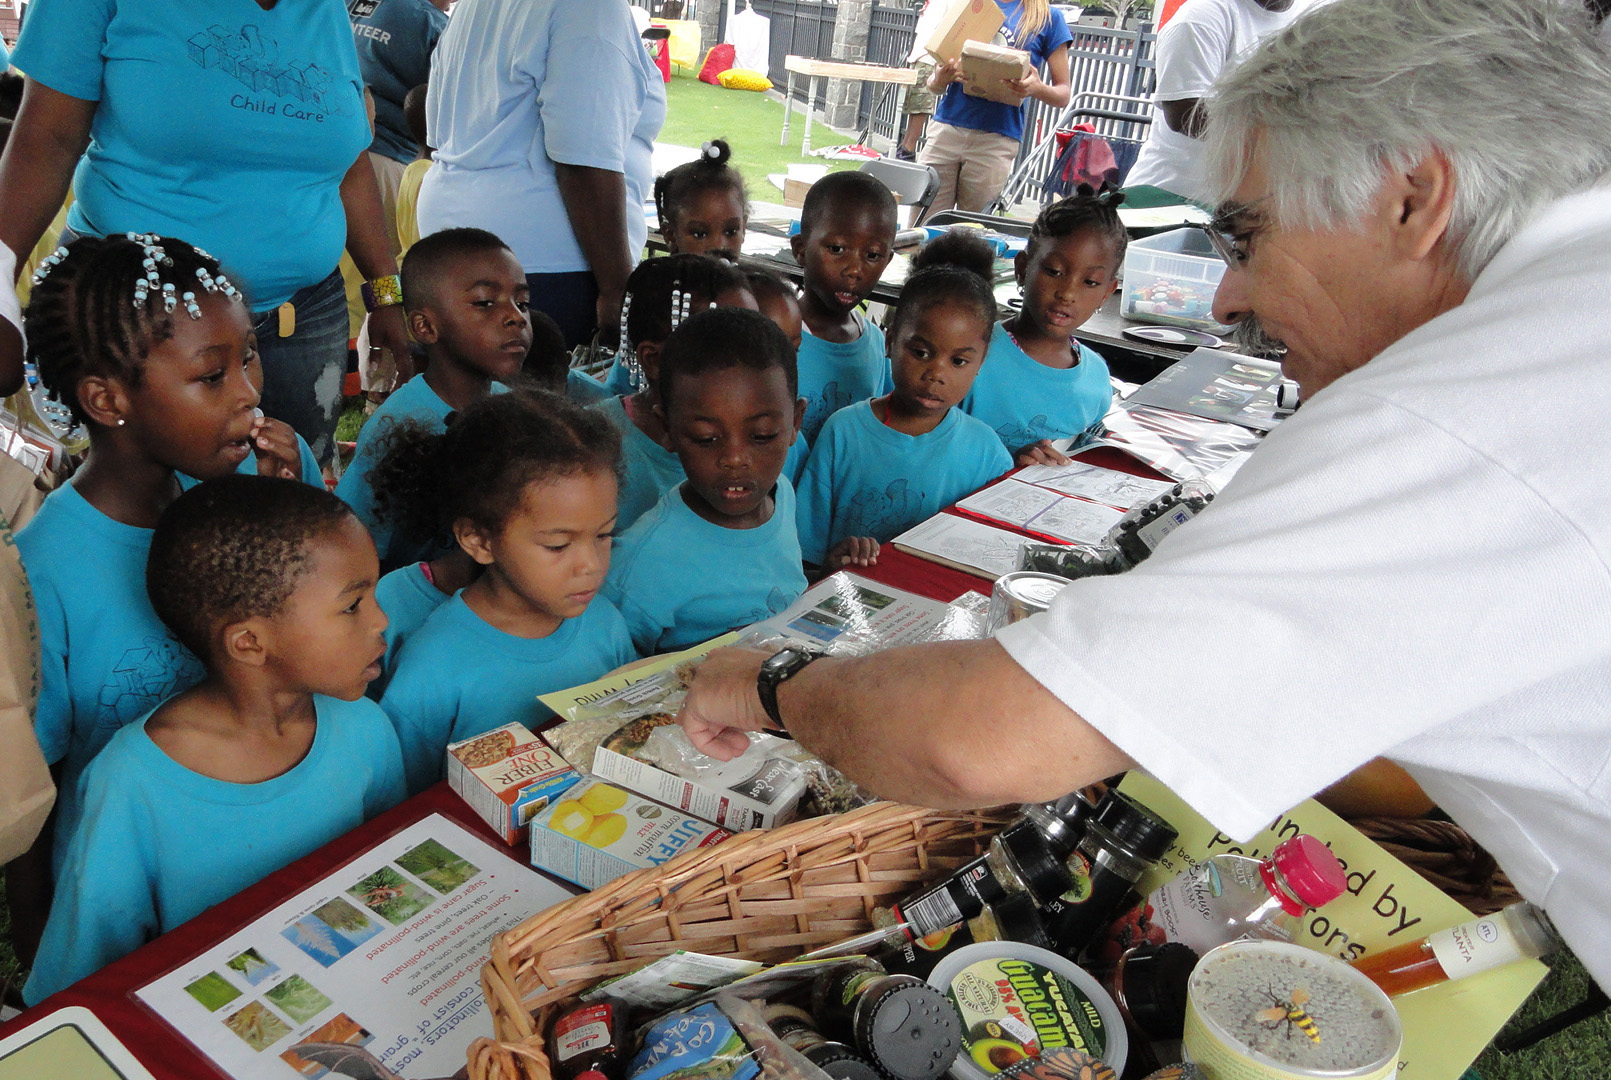 A man points out packaged foods spread out at a booth to a group of children.